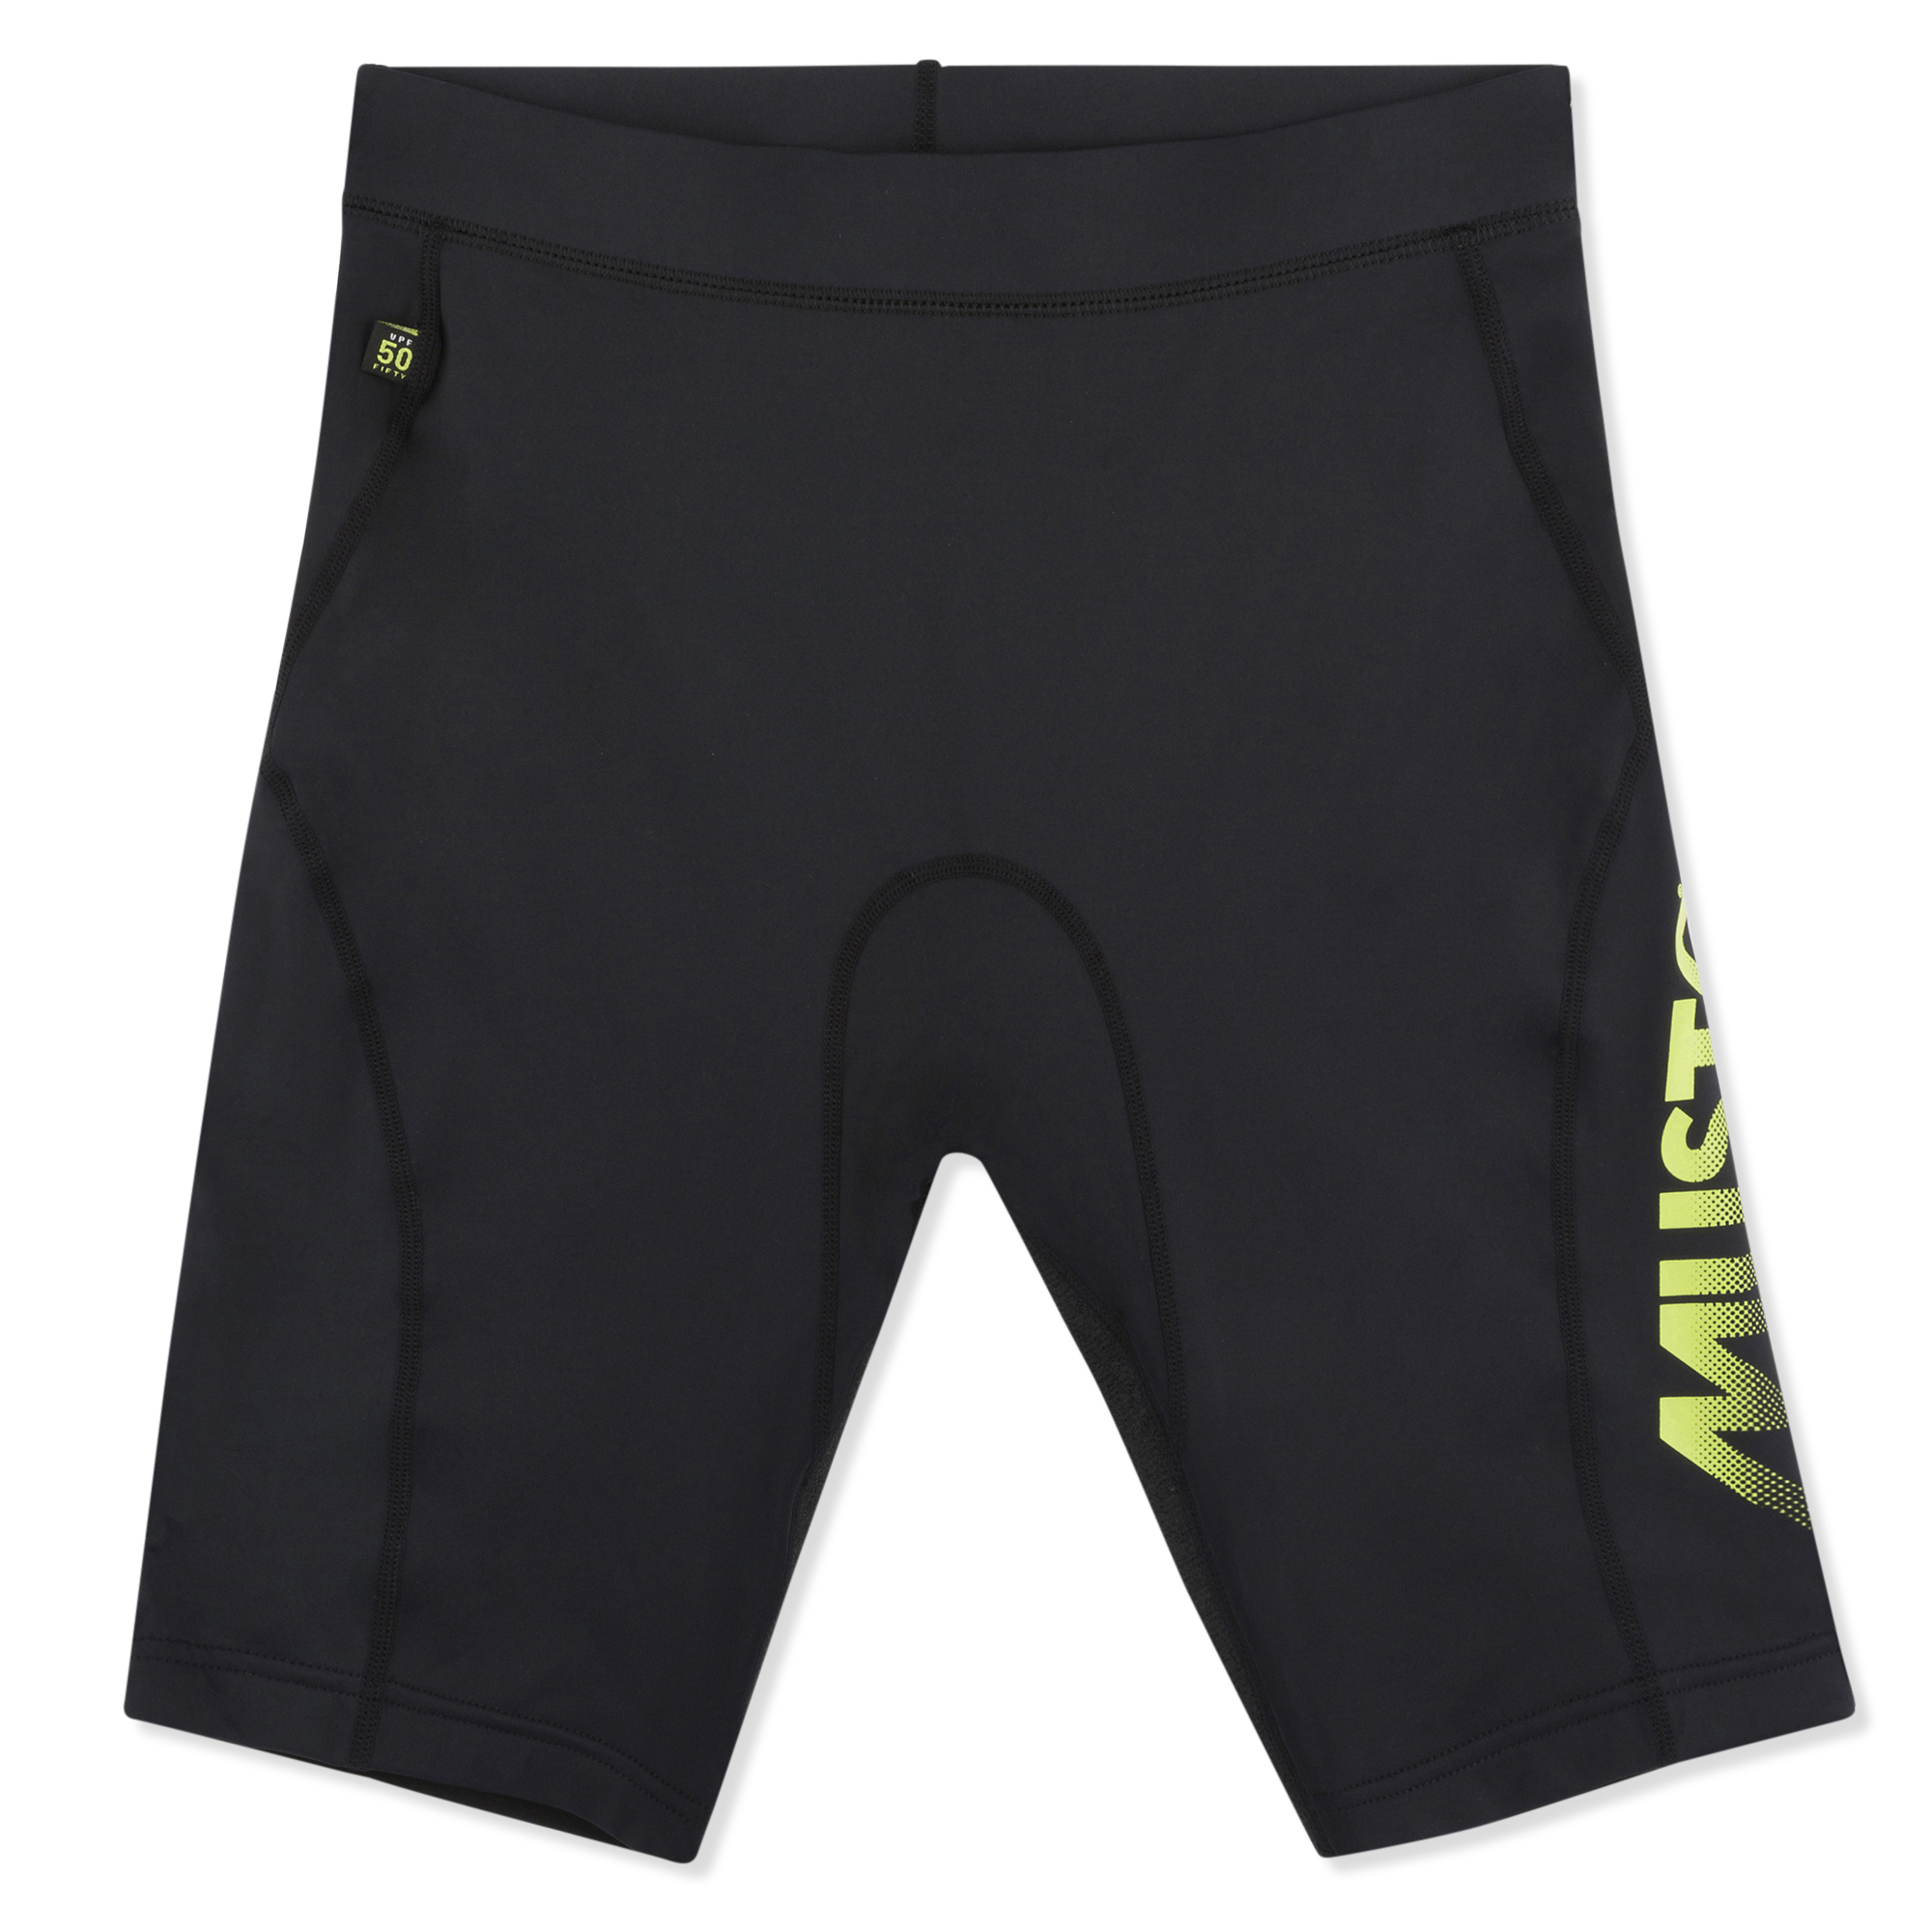 MUSTO CHAMPIONSHIP DECK SHIELD SHORT (SMST002)